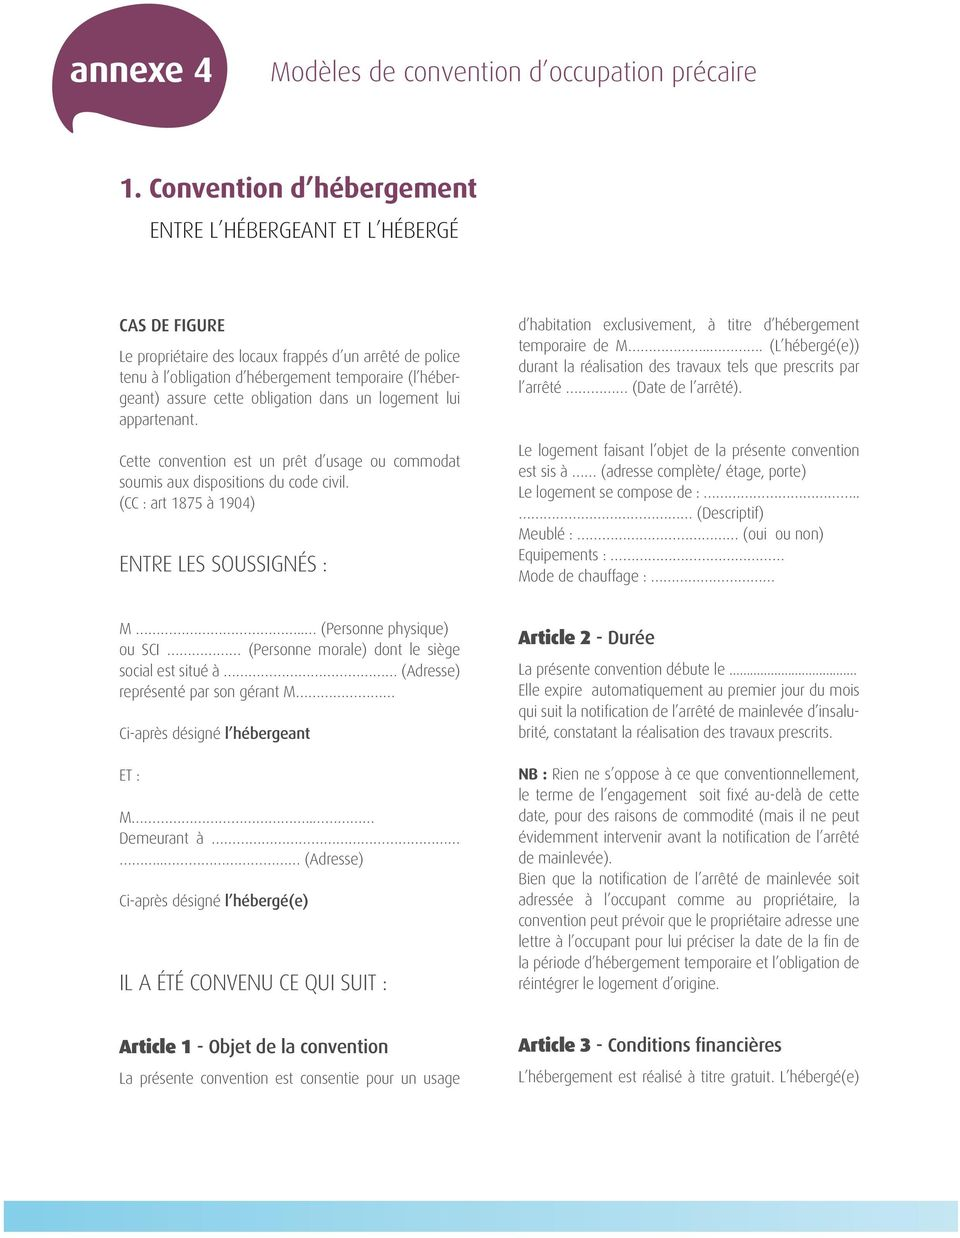 Annexe 4 Modeles De Convention D Occupation Precaire 1 Convention D Hebergement Entre L Hebergeant Et L Heberge Entre Les Soussignes Pdf Free Download